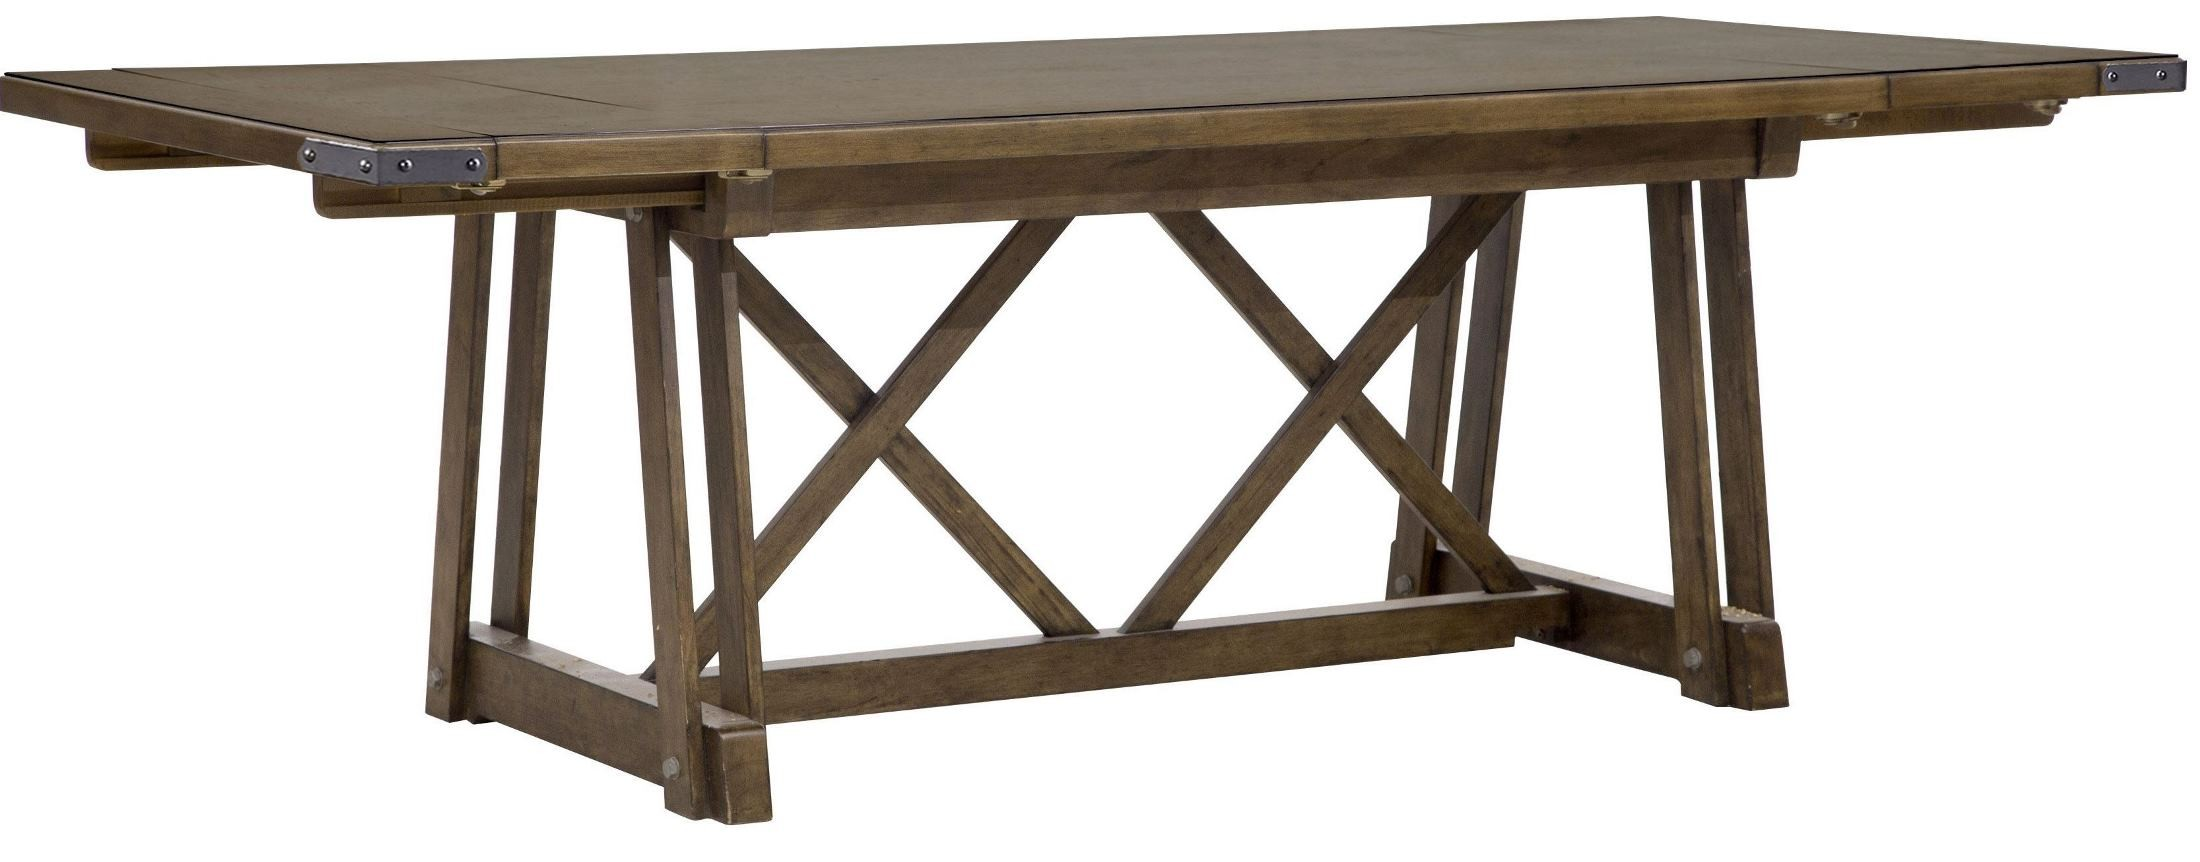 Weston loft rectangular dining table from pulaski p001240 p001241 coleman furniture - Rectangular dining table for 6 ...